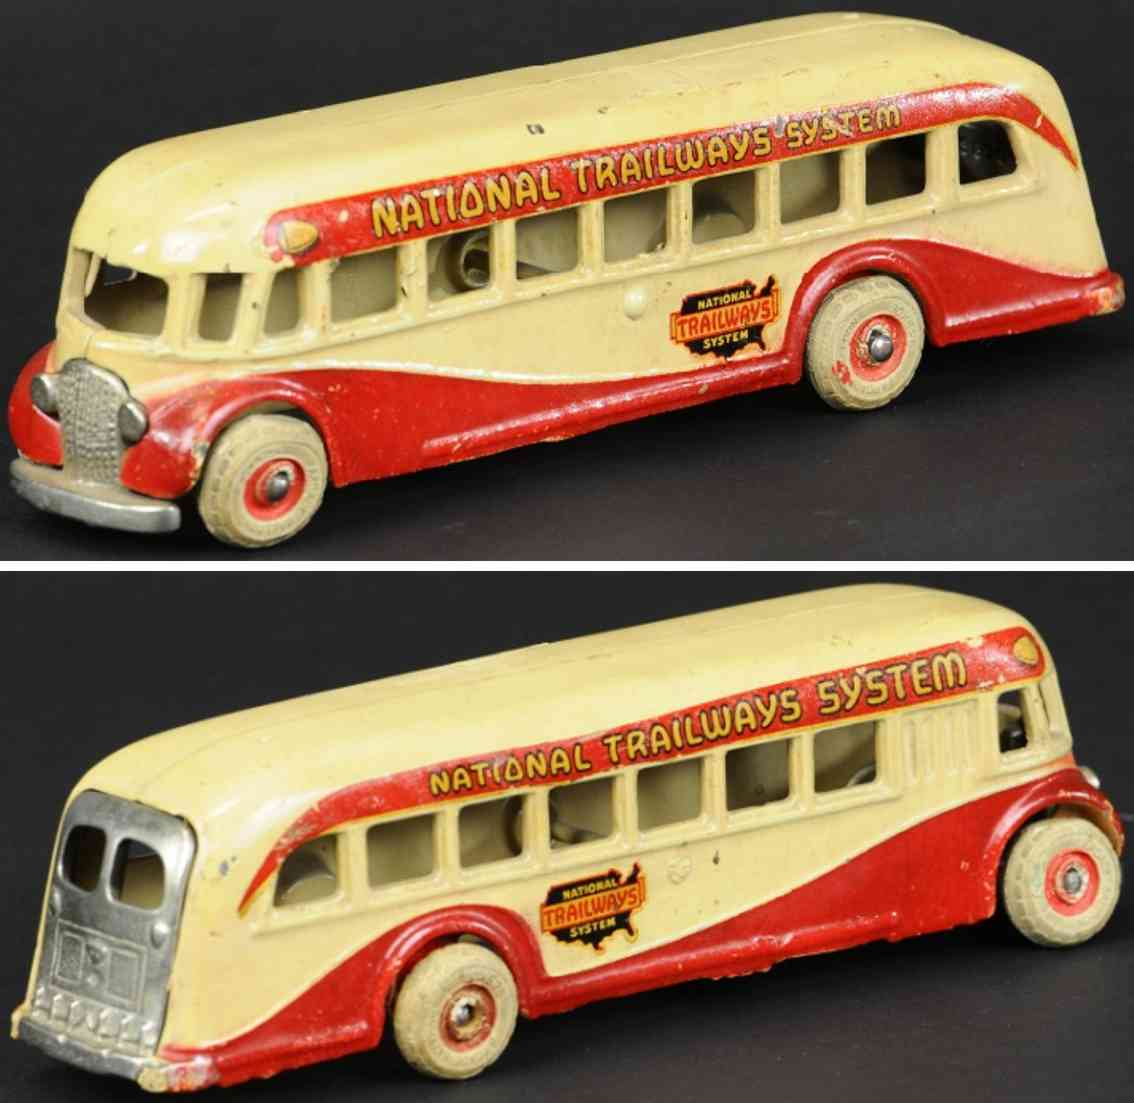 arcade national trailway spielzeug gusseisen bus creme rot